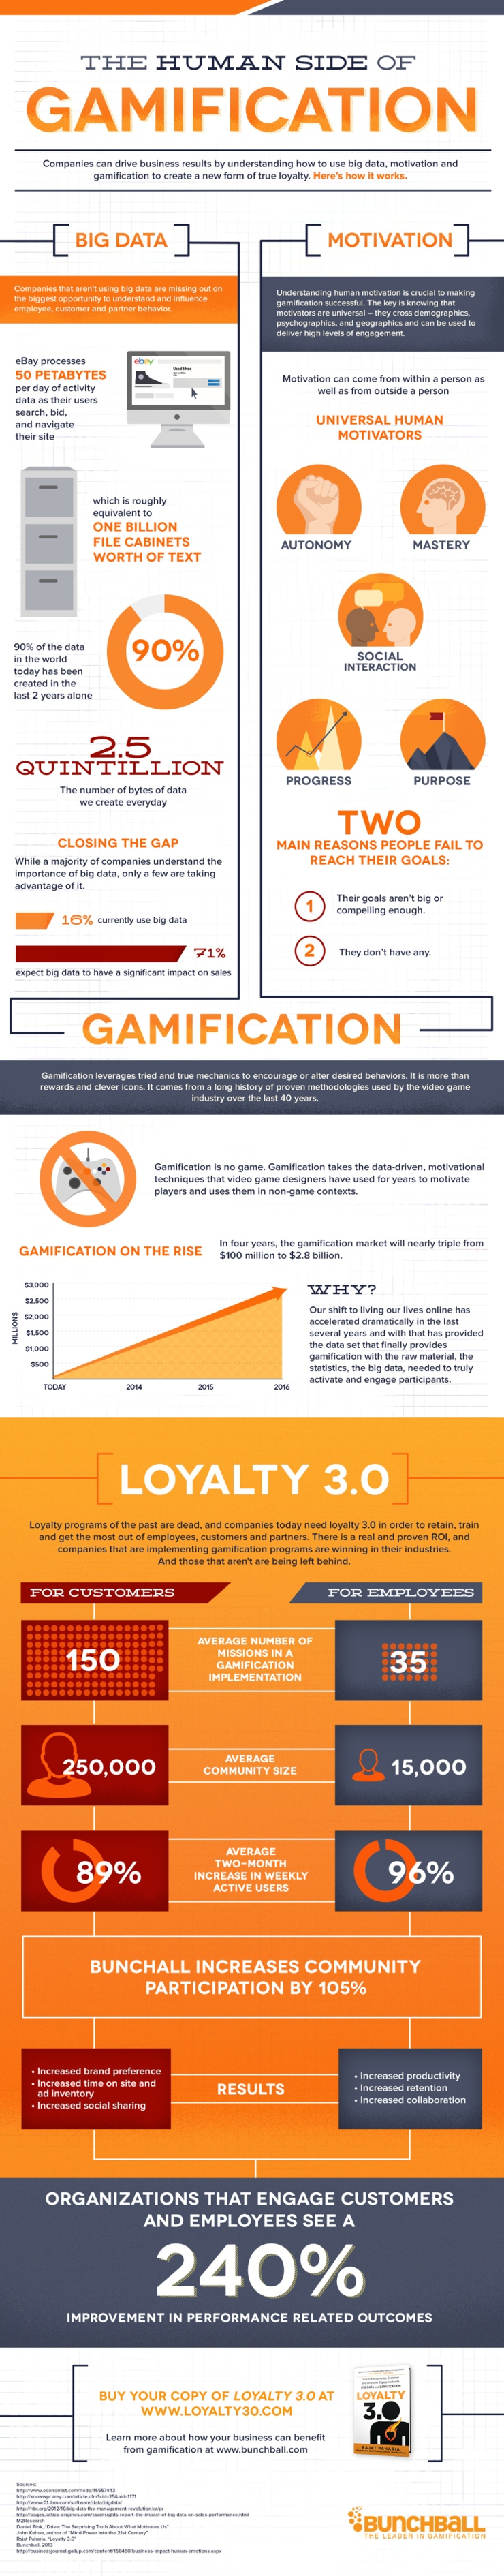 gamification_infographic